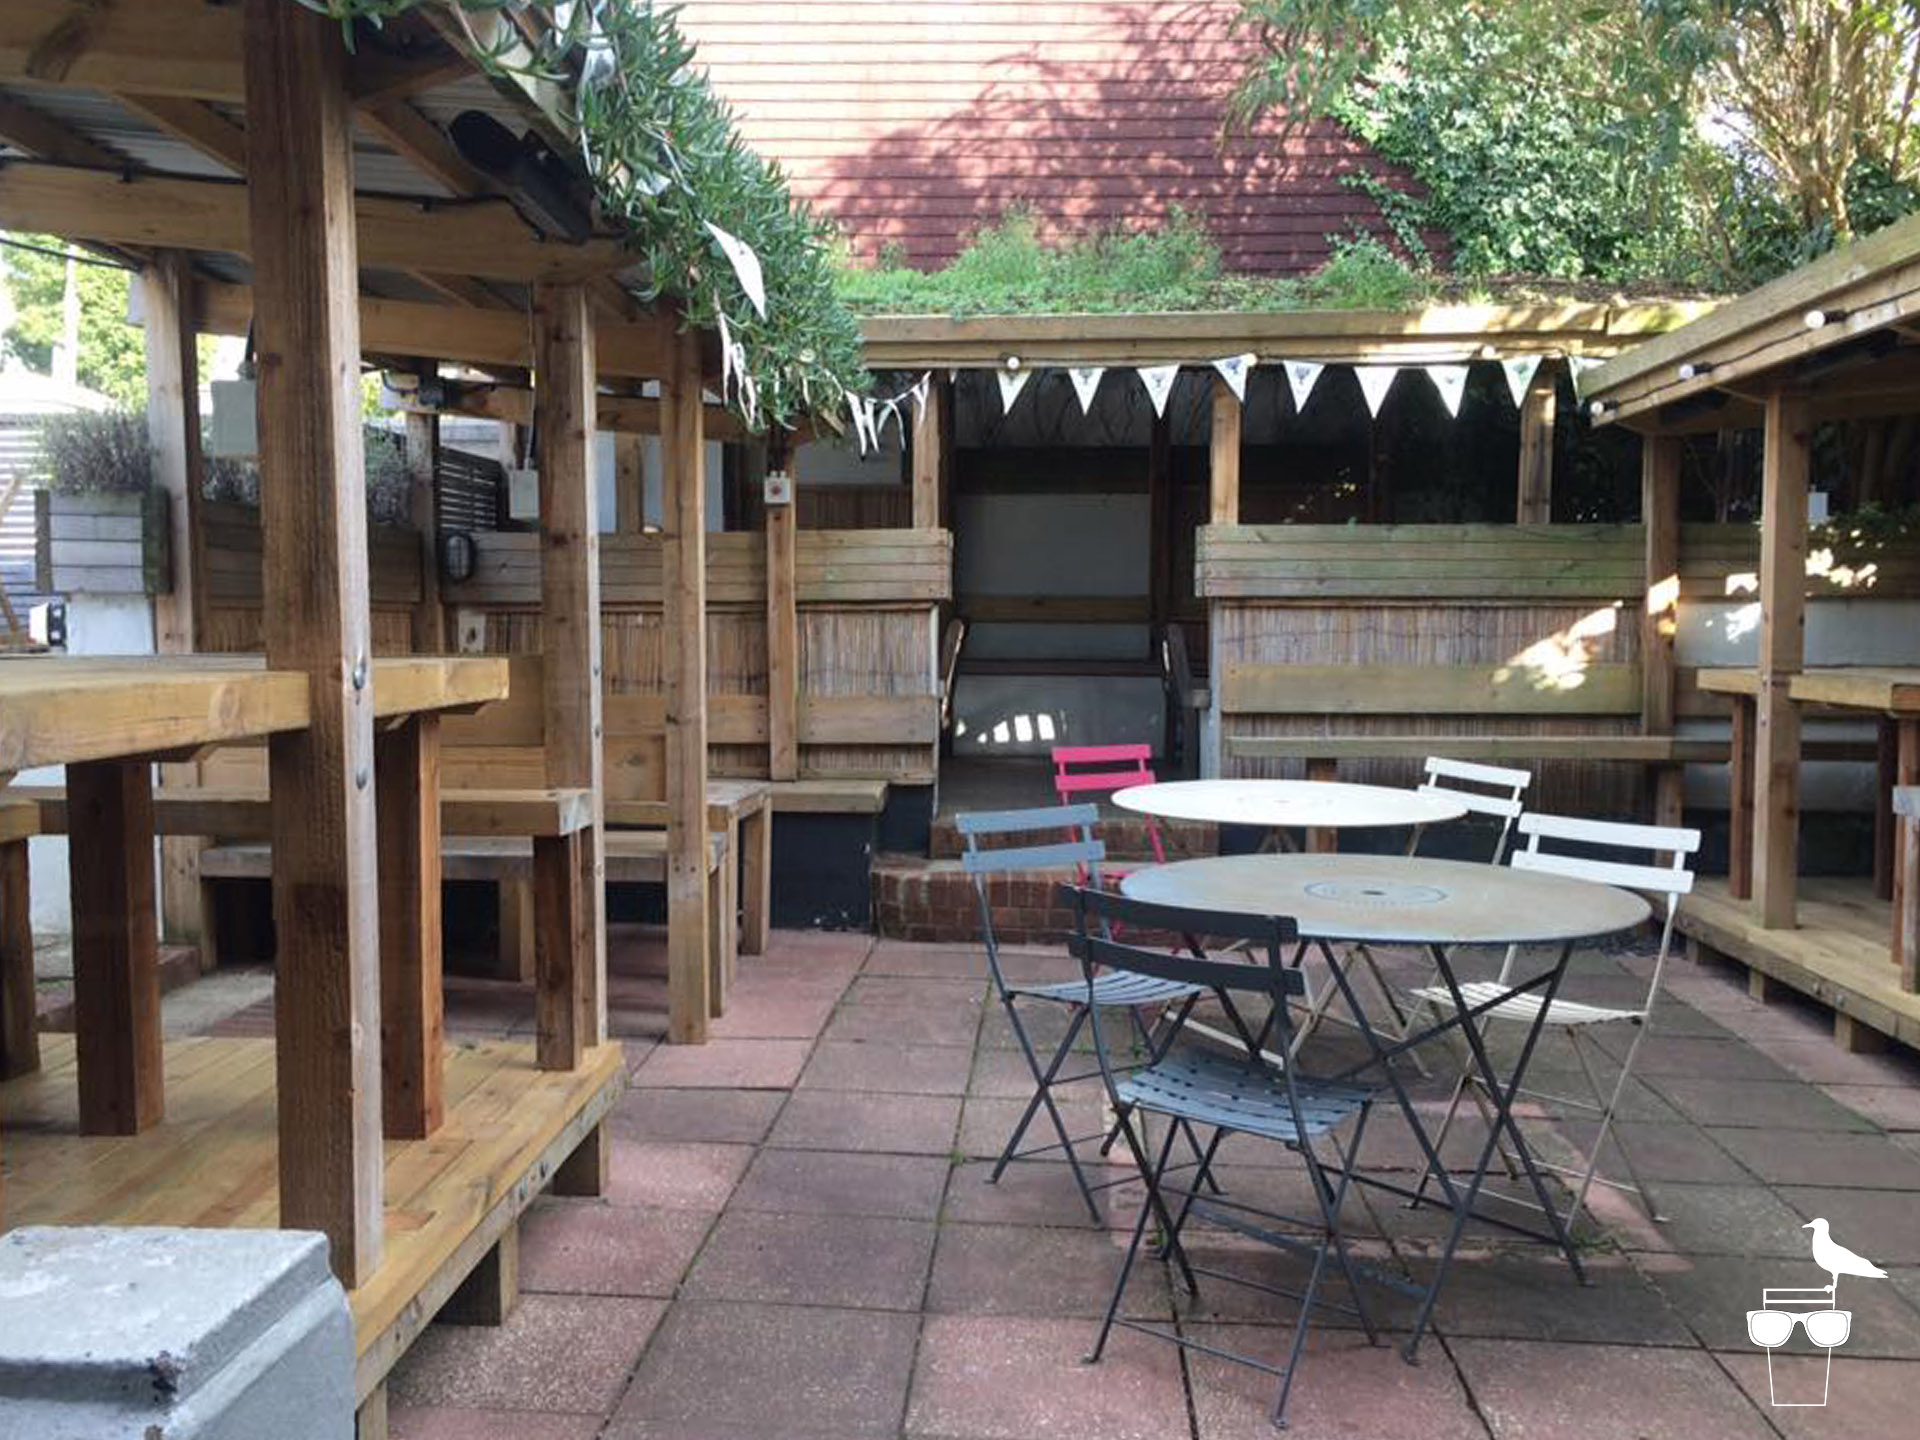 preston park tavern brighton patio garden